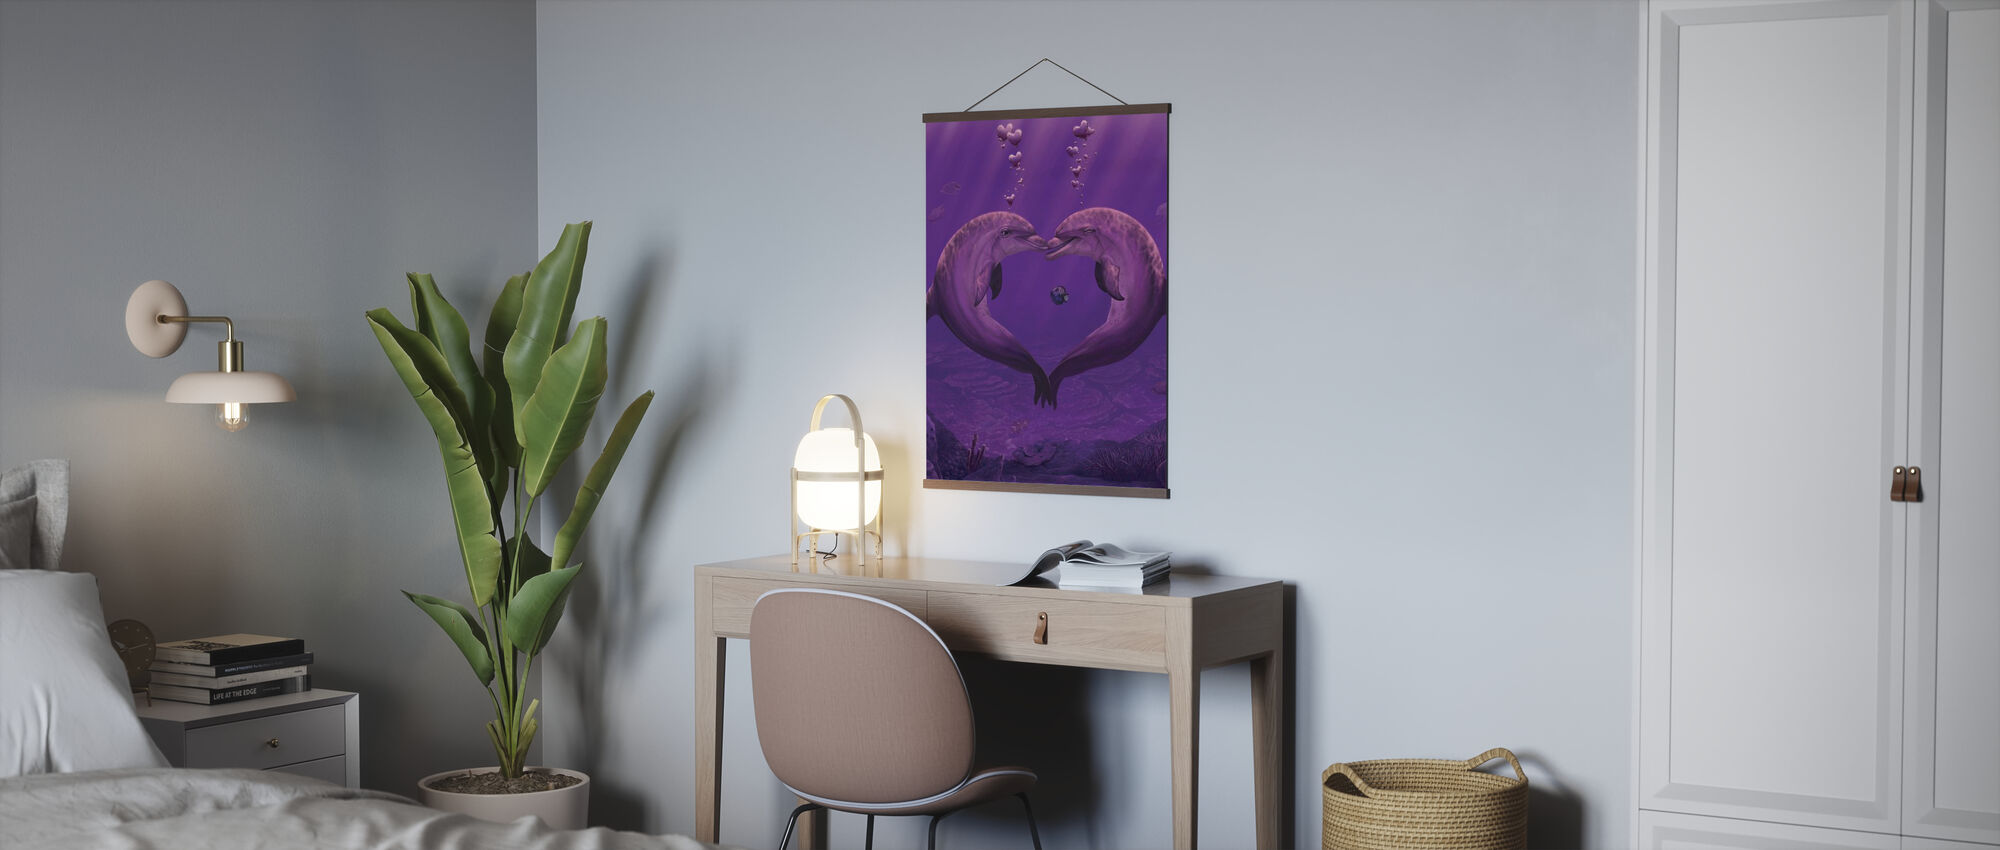 Sea of Hearts - Poster - Office